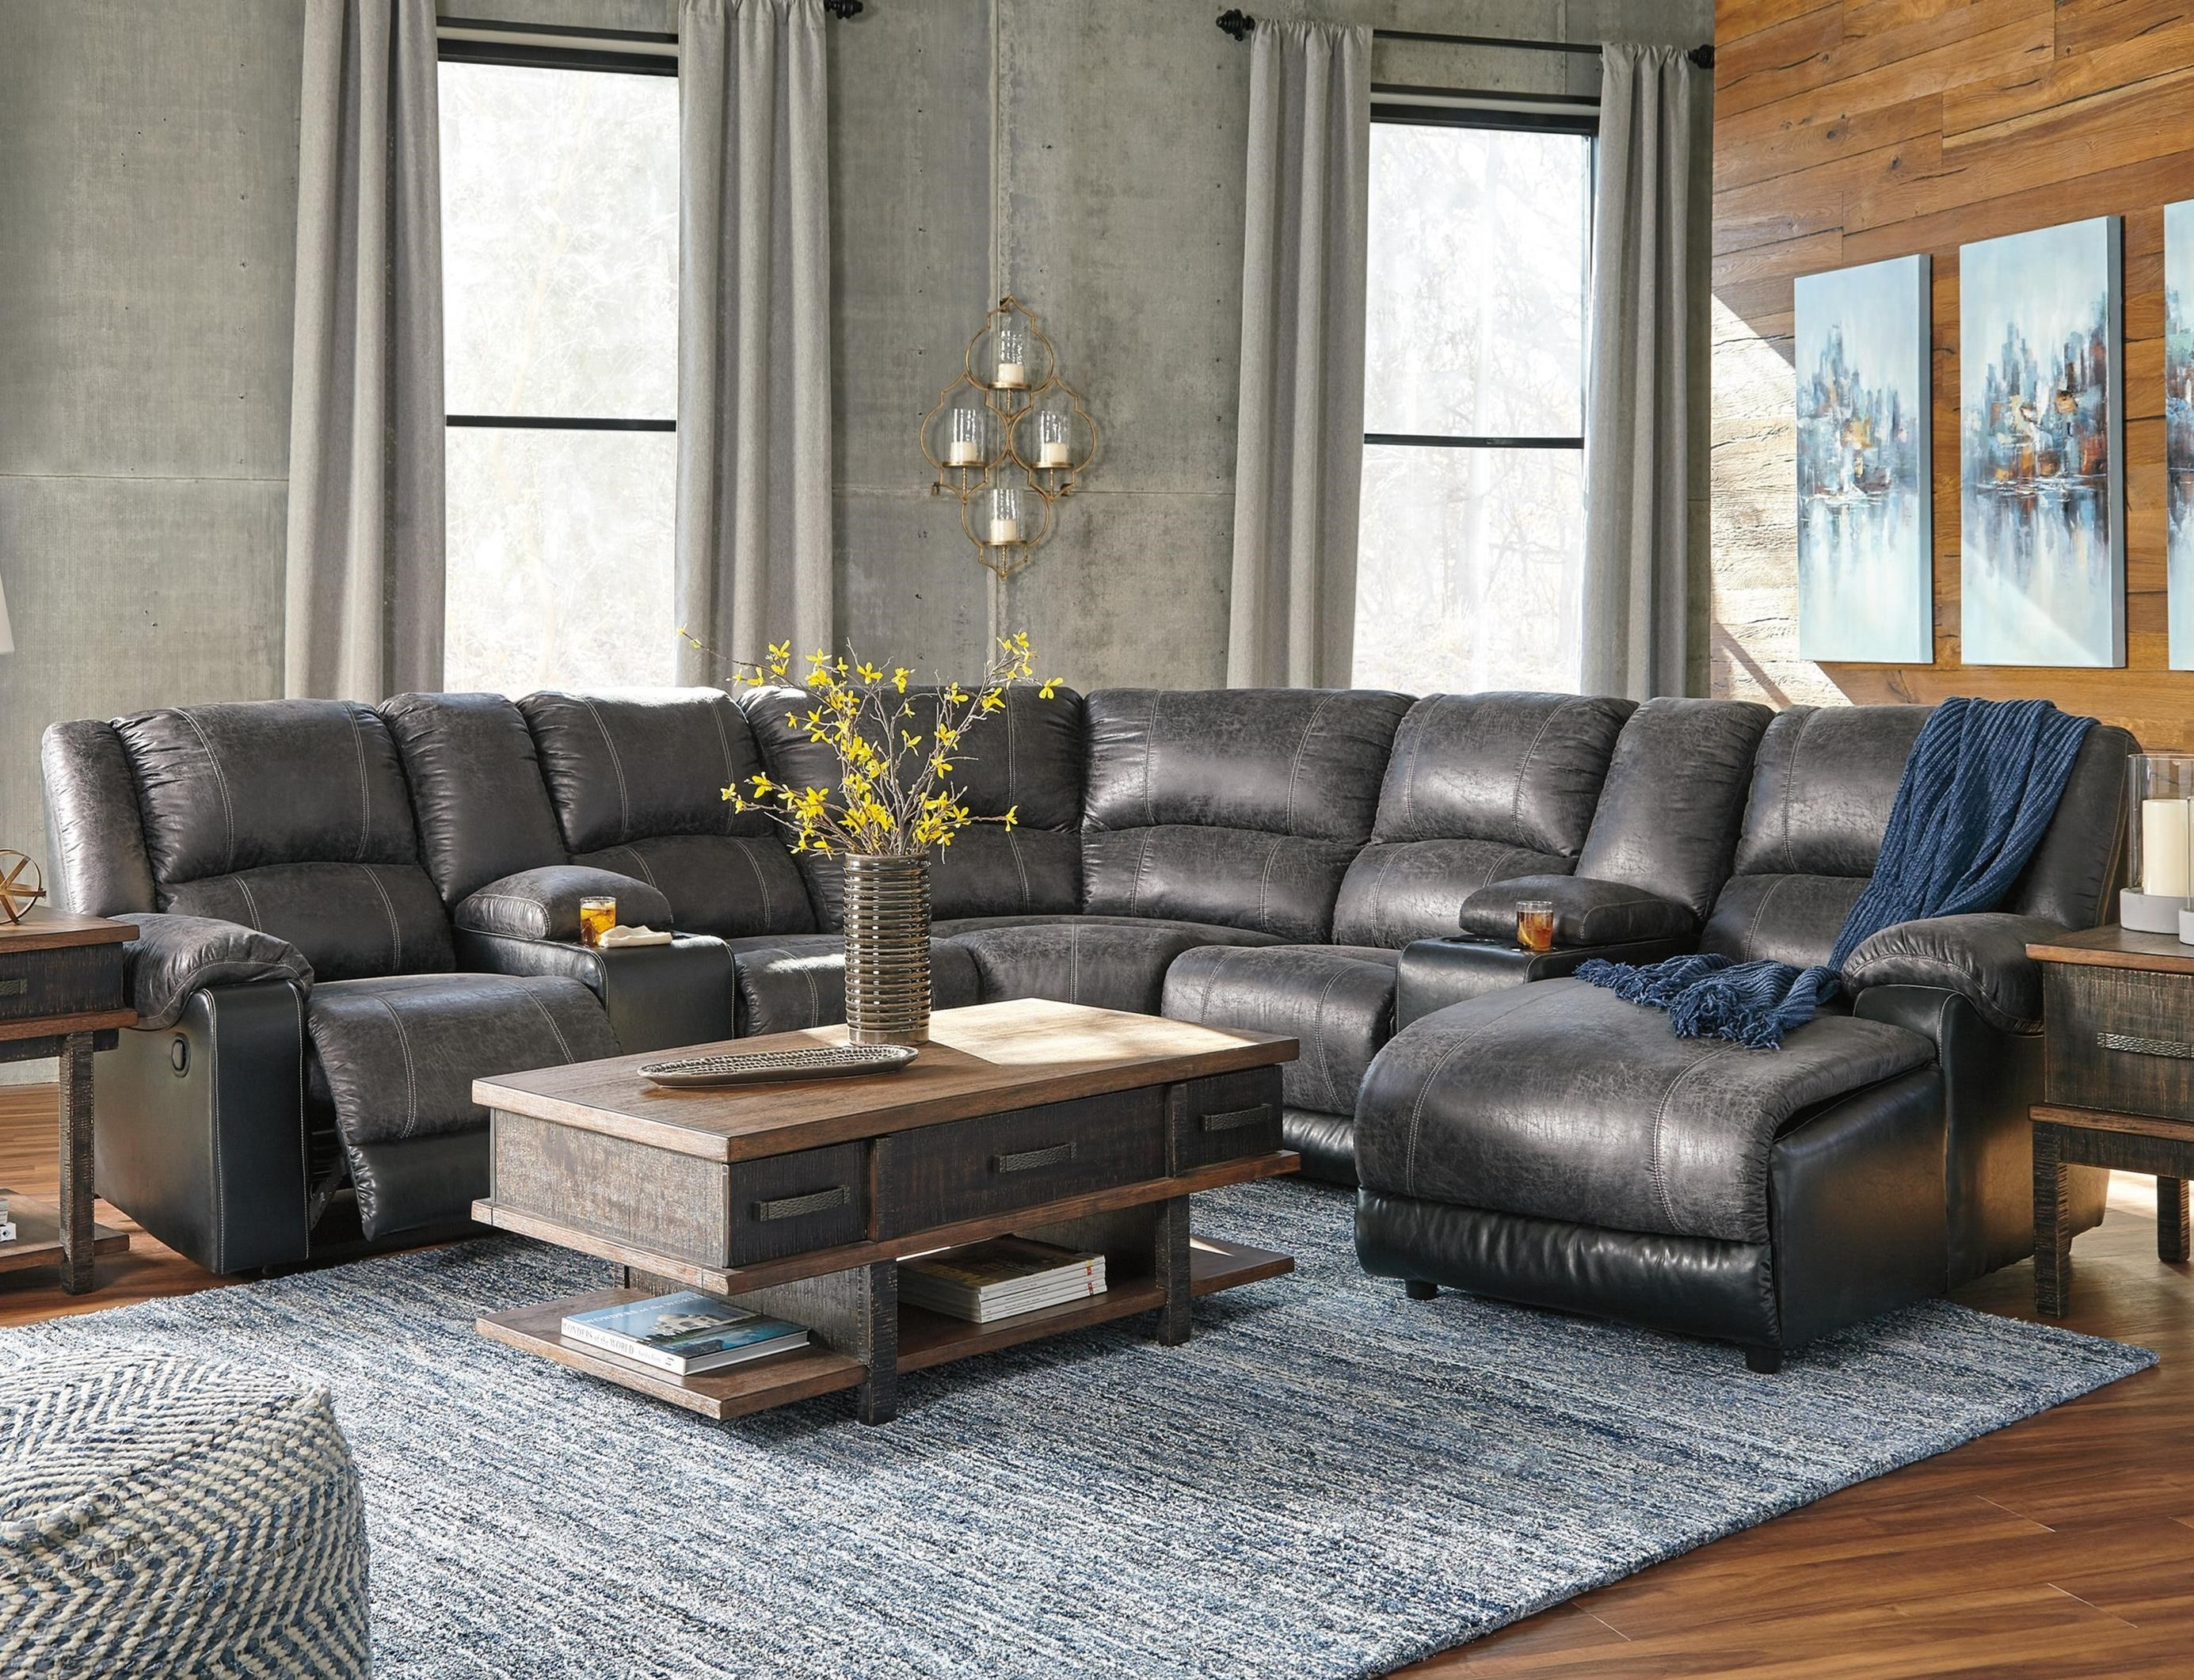 Nantahala Reclining Sectional with 2 Consoles & Chaise by Signature Design by Ashley at Value City Furniture